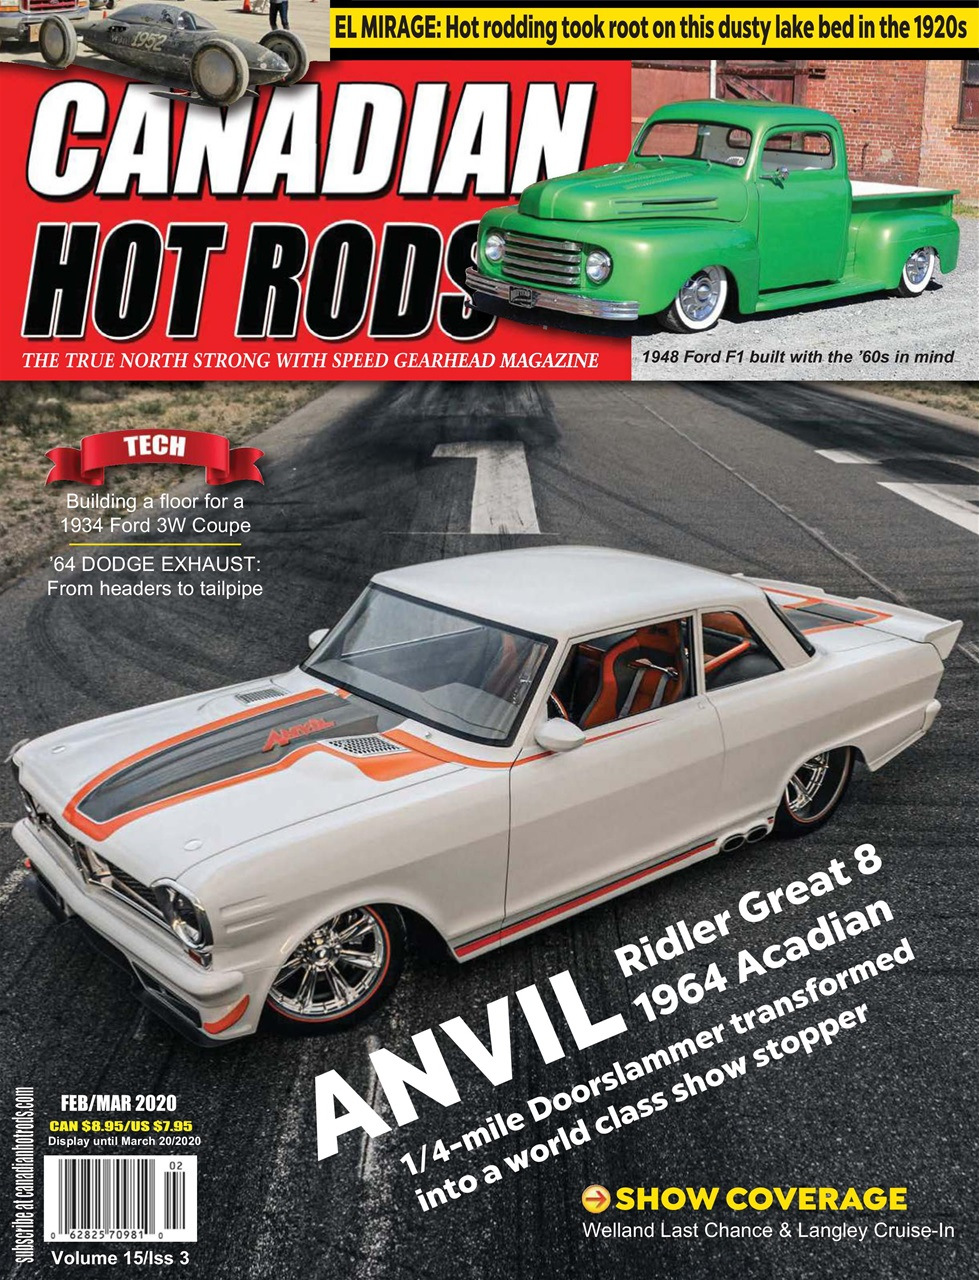 Canadian Hot Rods Magazine - Feb/March 2020